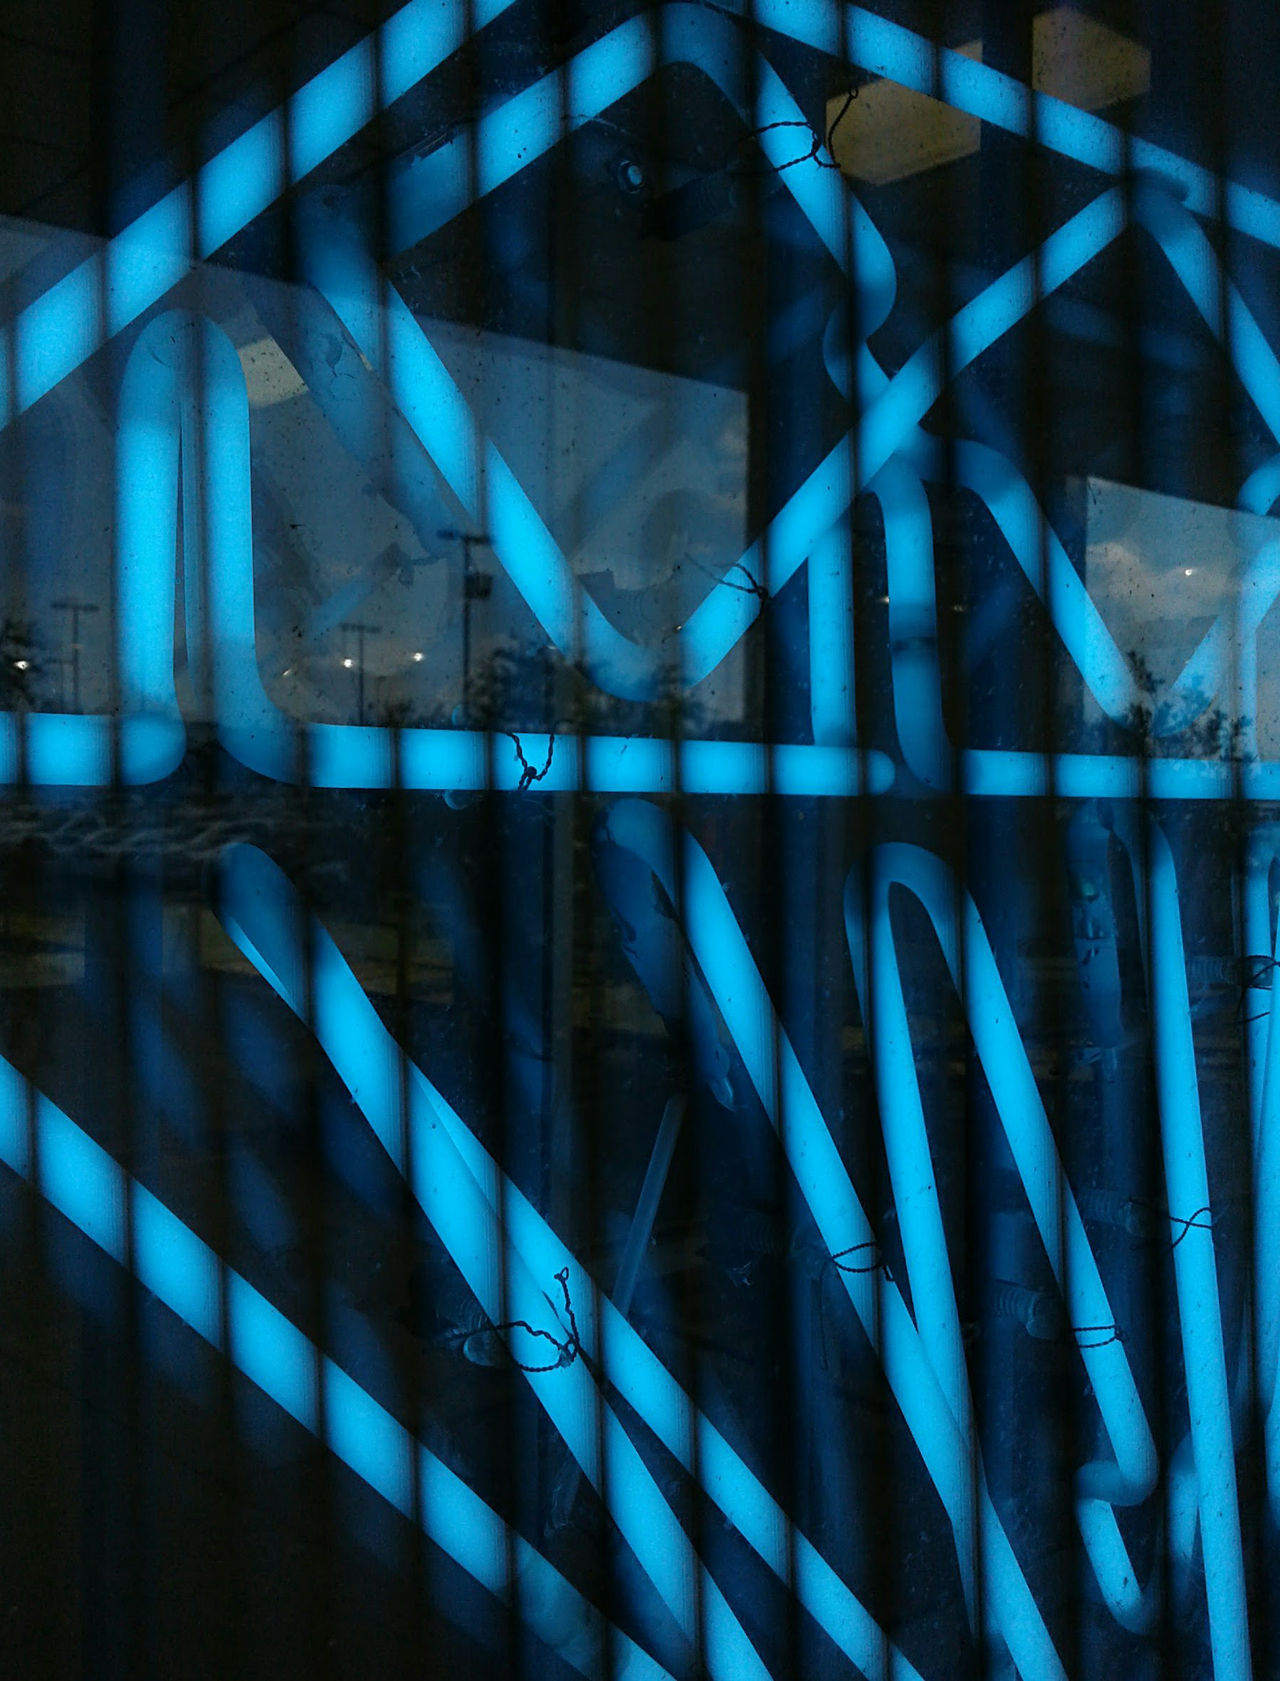 Close-up of blue neon light tubes through metal window bars. Bars Blue Close-up Darkness And Light Geometric Geometric Abstraction Glow Illuminated Lights Lines Neon Night No People Urban